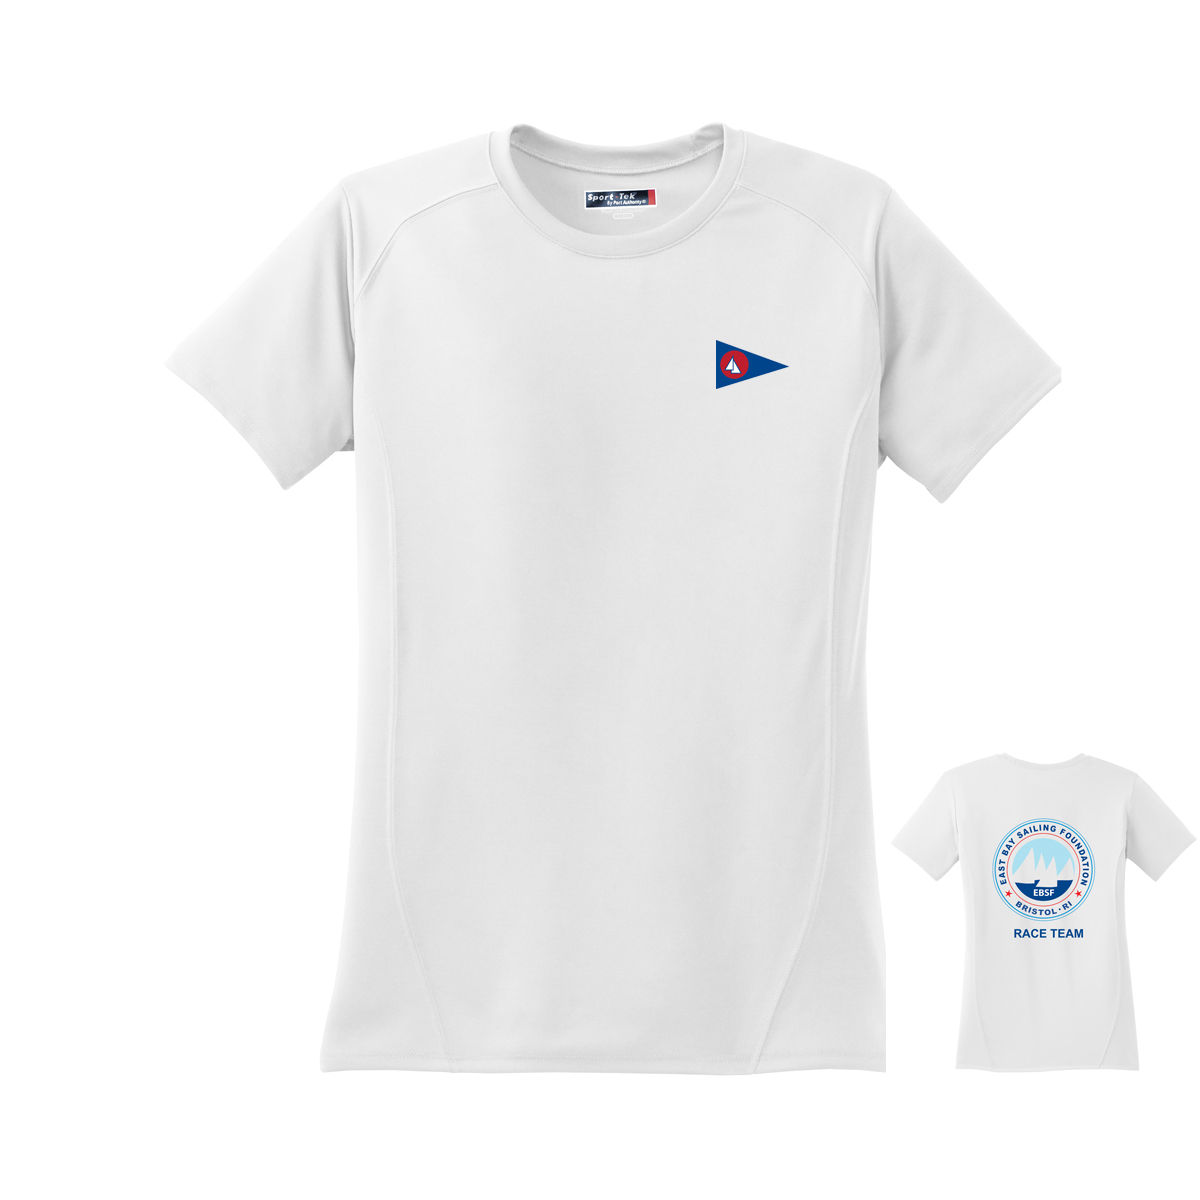 East Bay Sailing Foundation - Women's Race Team Short Sleeve Tech Tee